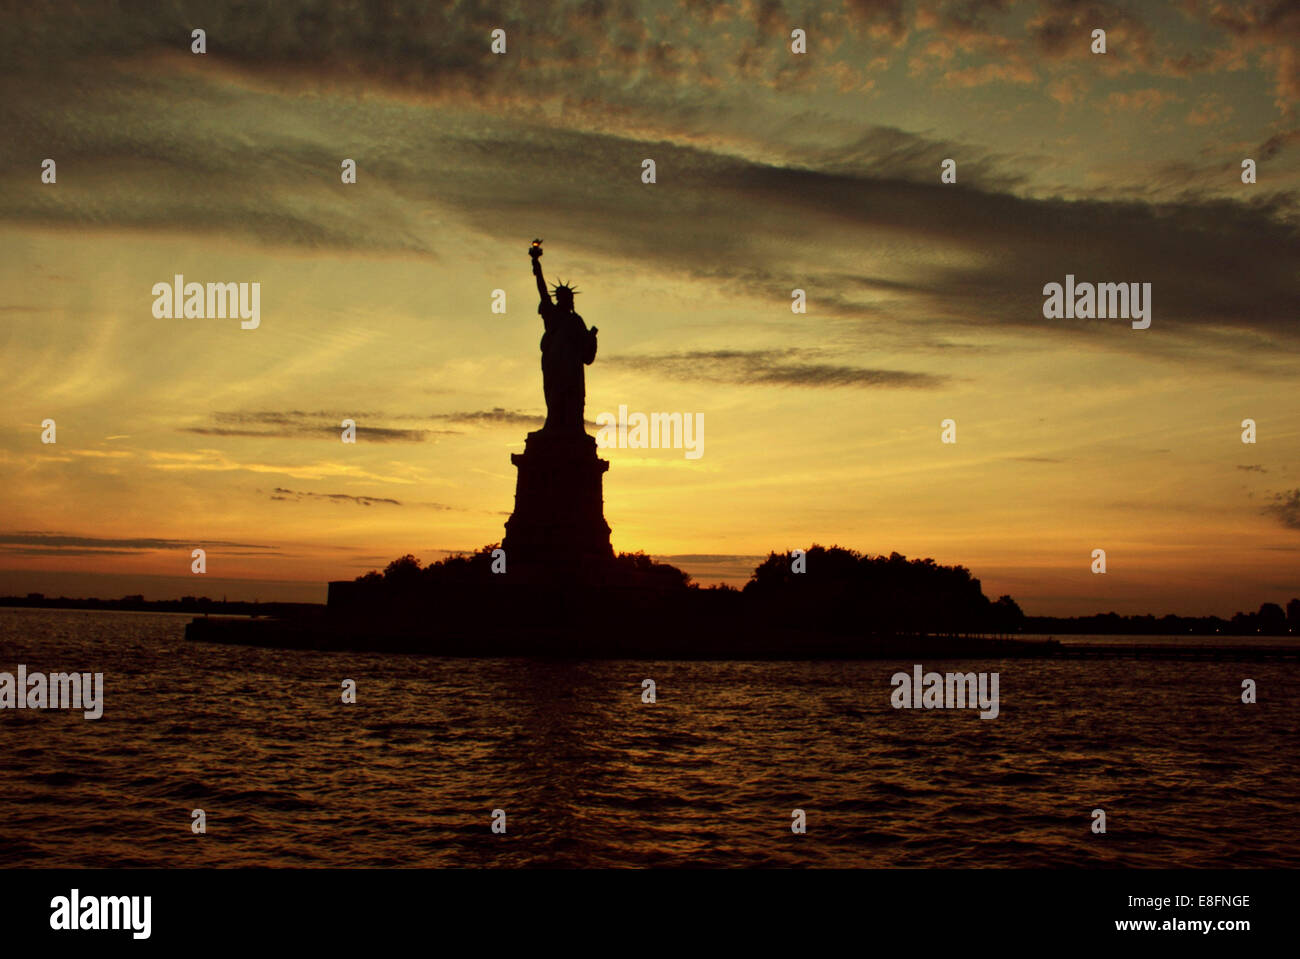 USA, New York State, New York City, Statue of Liberty at sunset - Stock Image